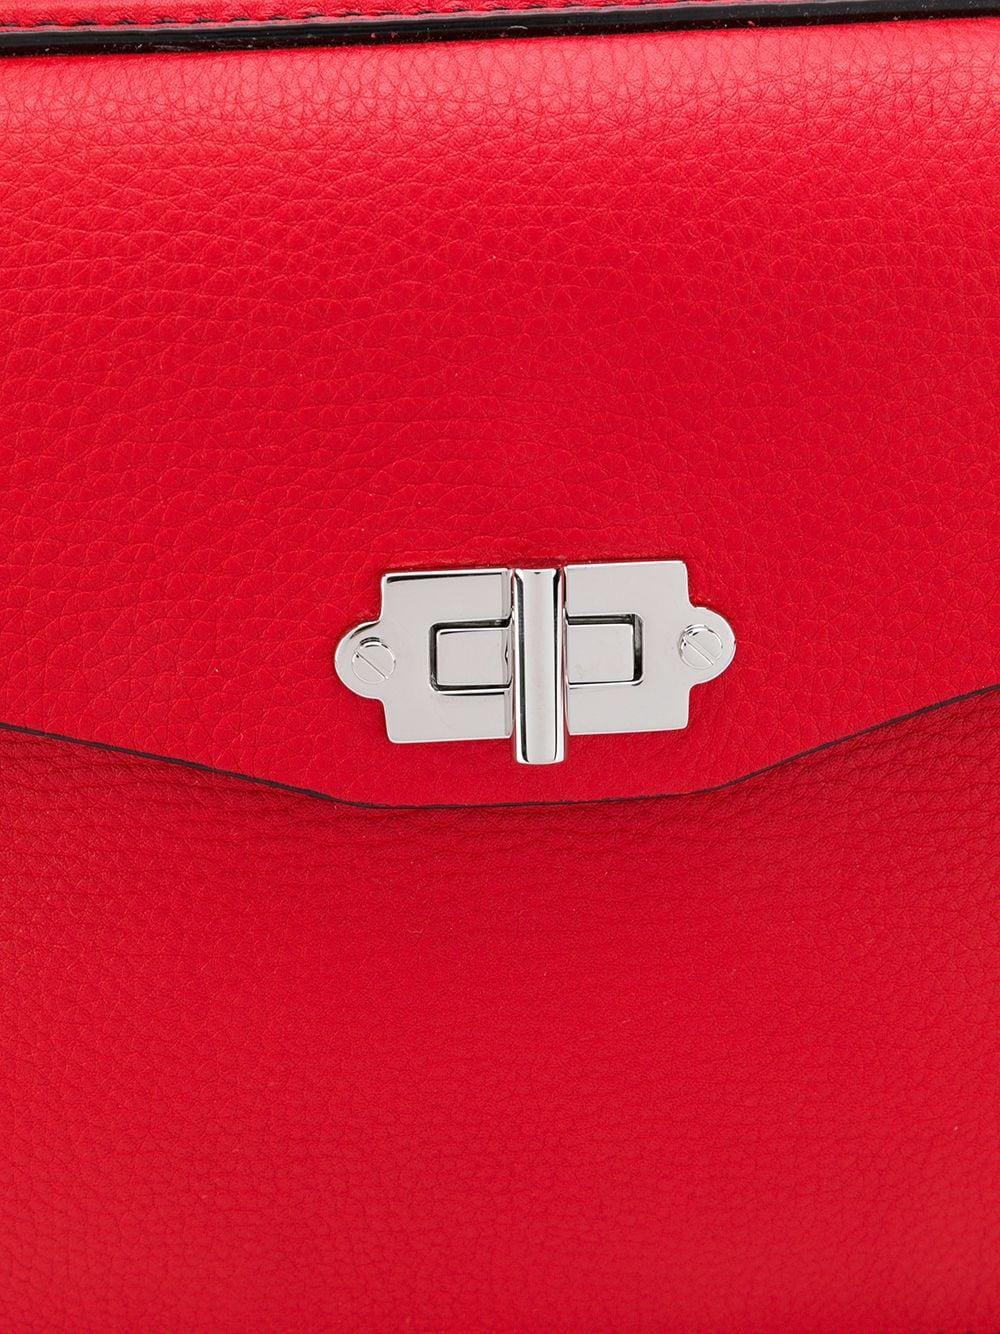 Proenza Schouler Leather Small Hava Top Handle Tote in Red